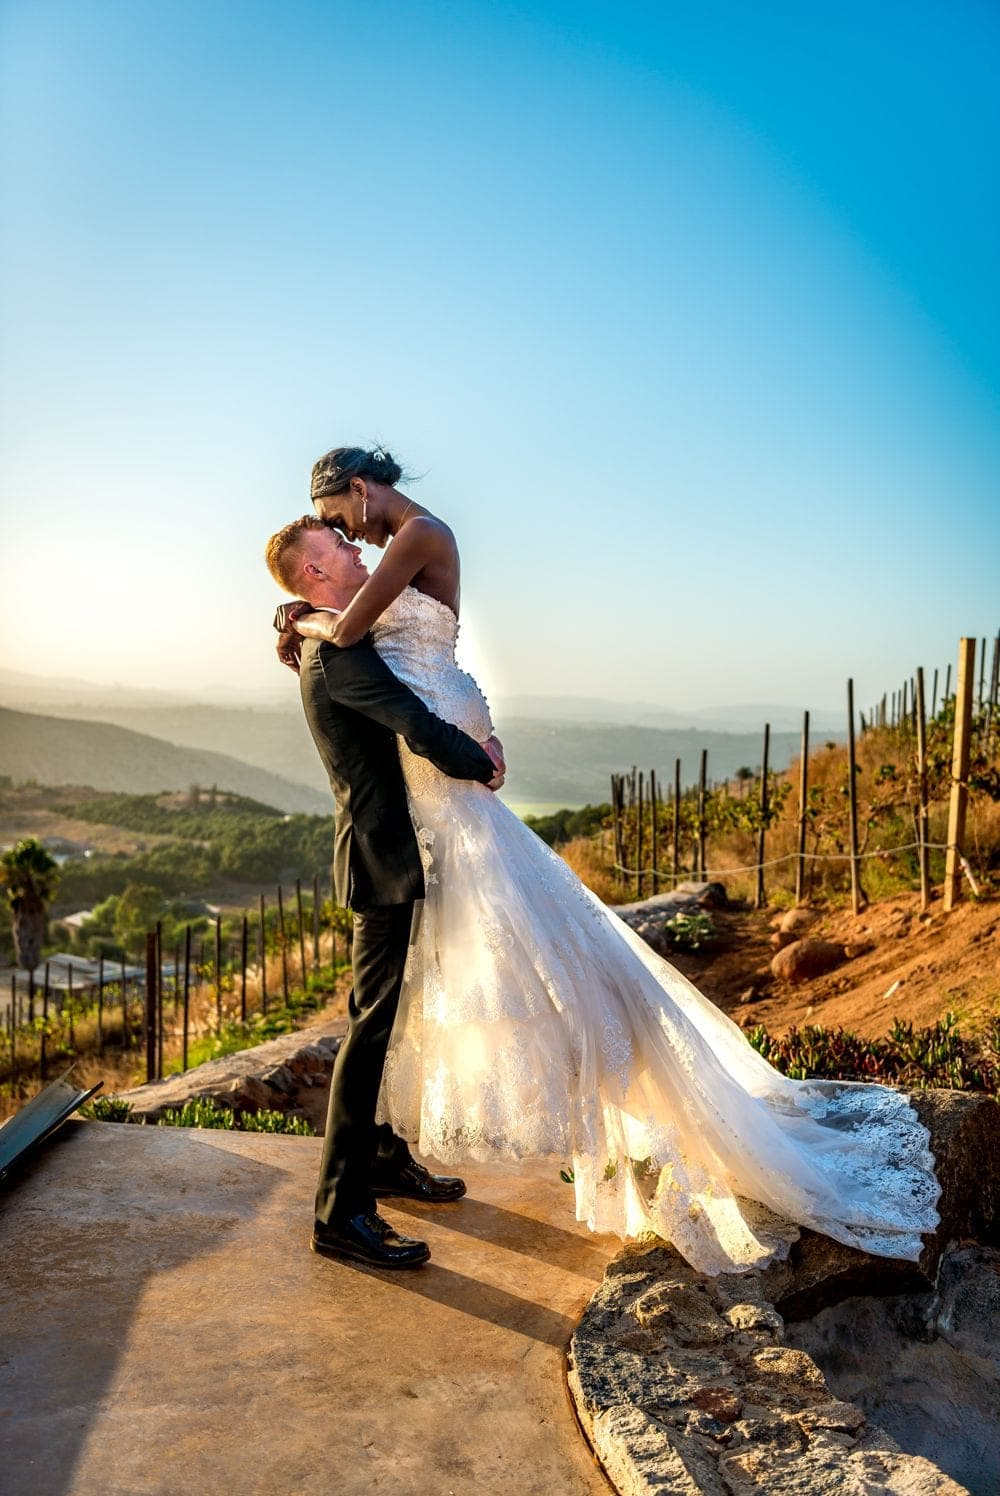 Cordiano winery wedding sunset photography in Escondido California.